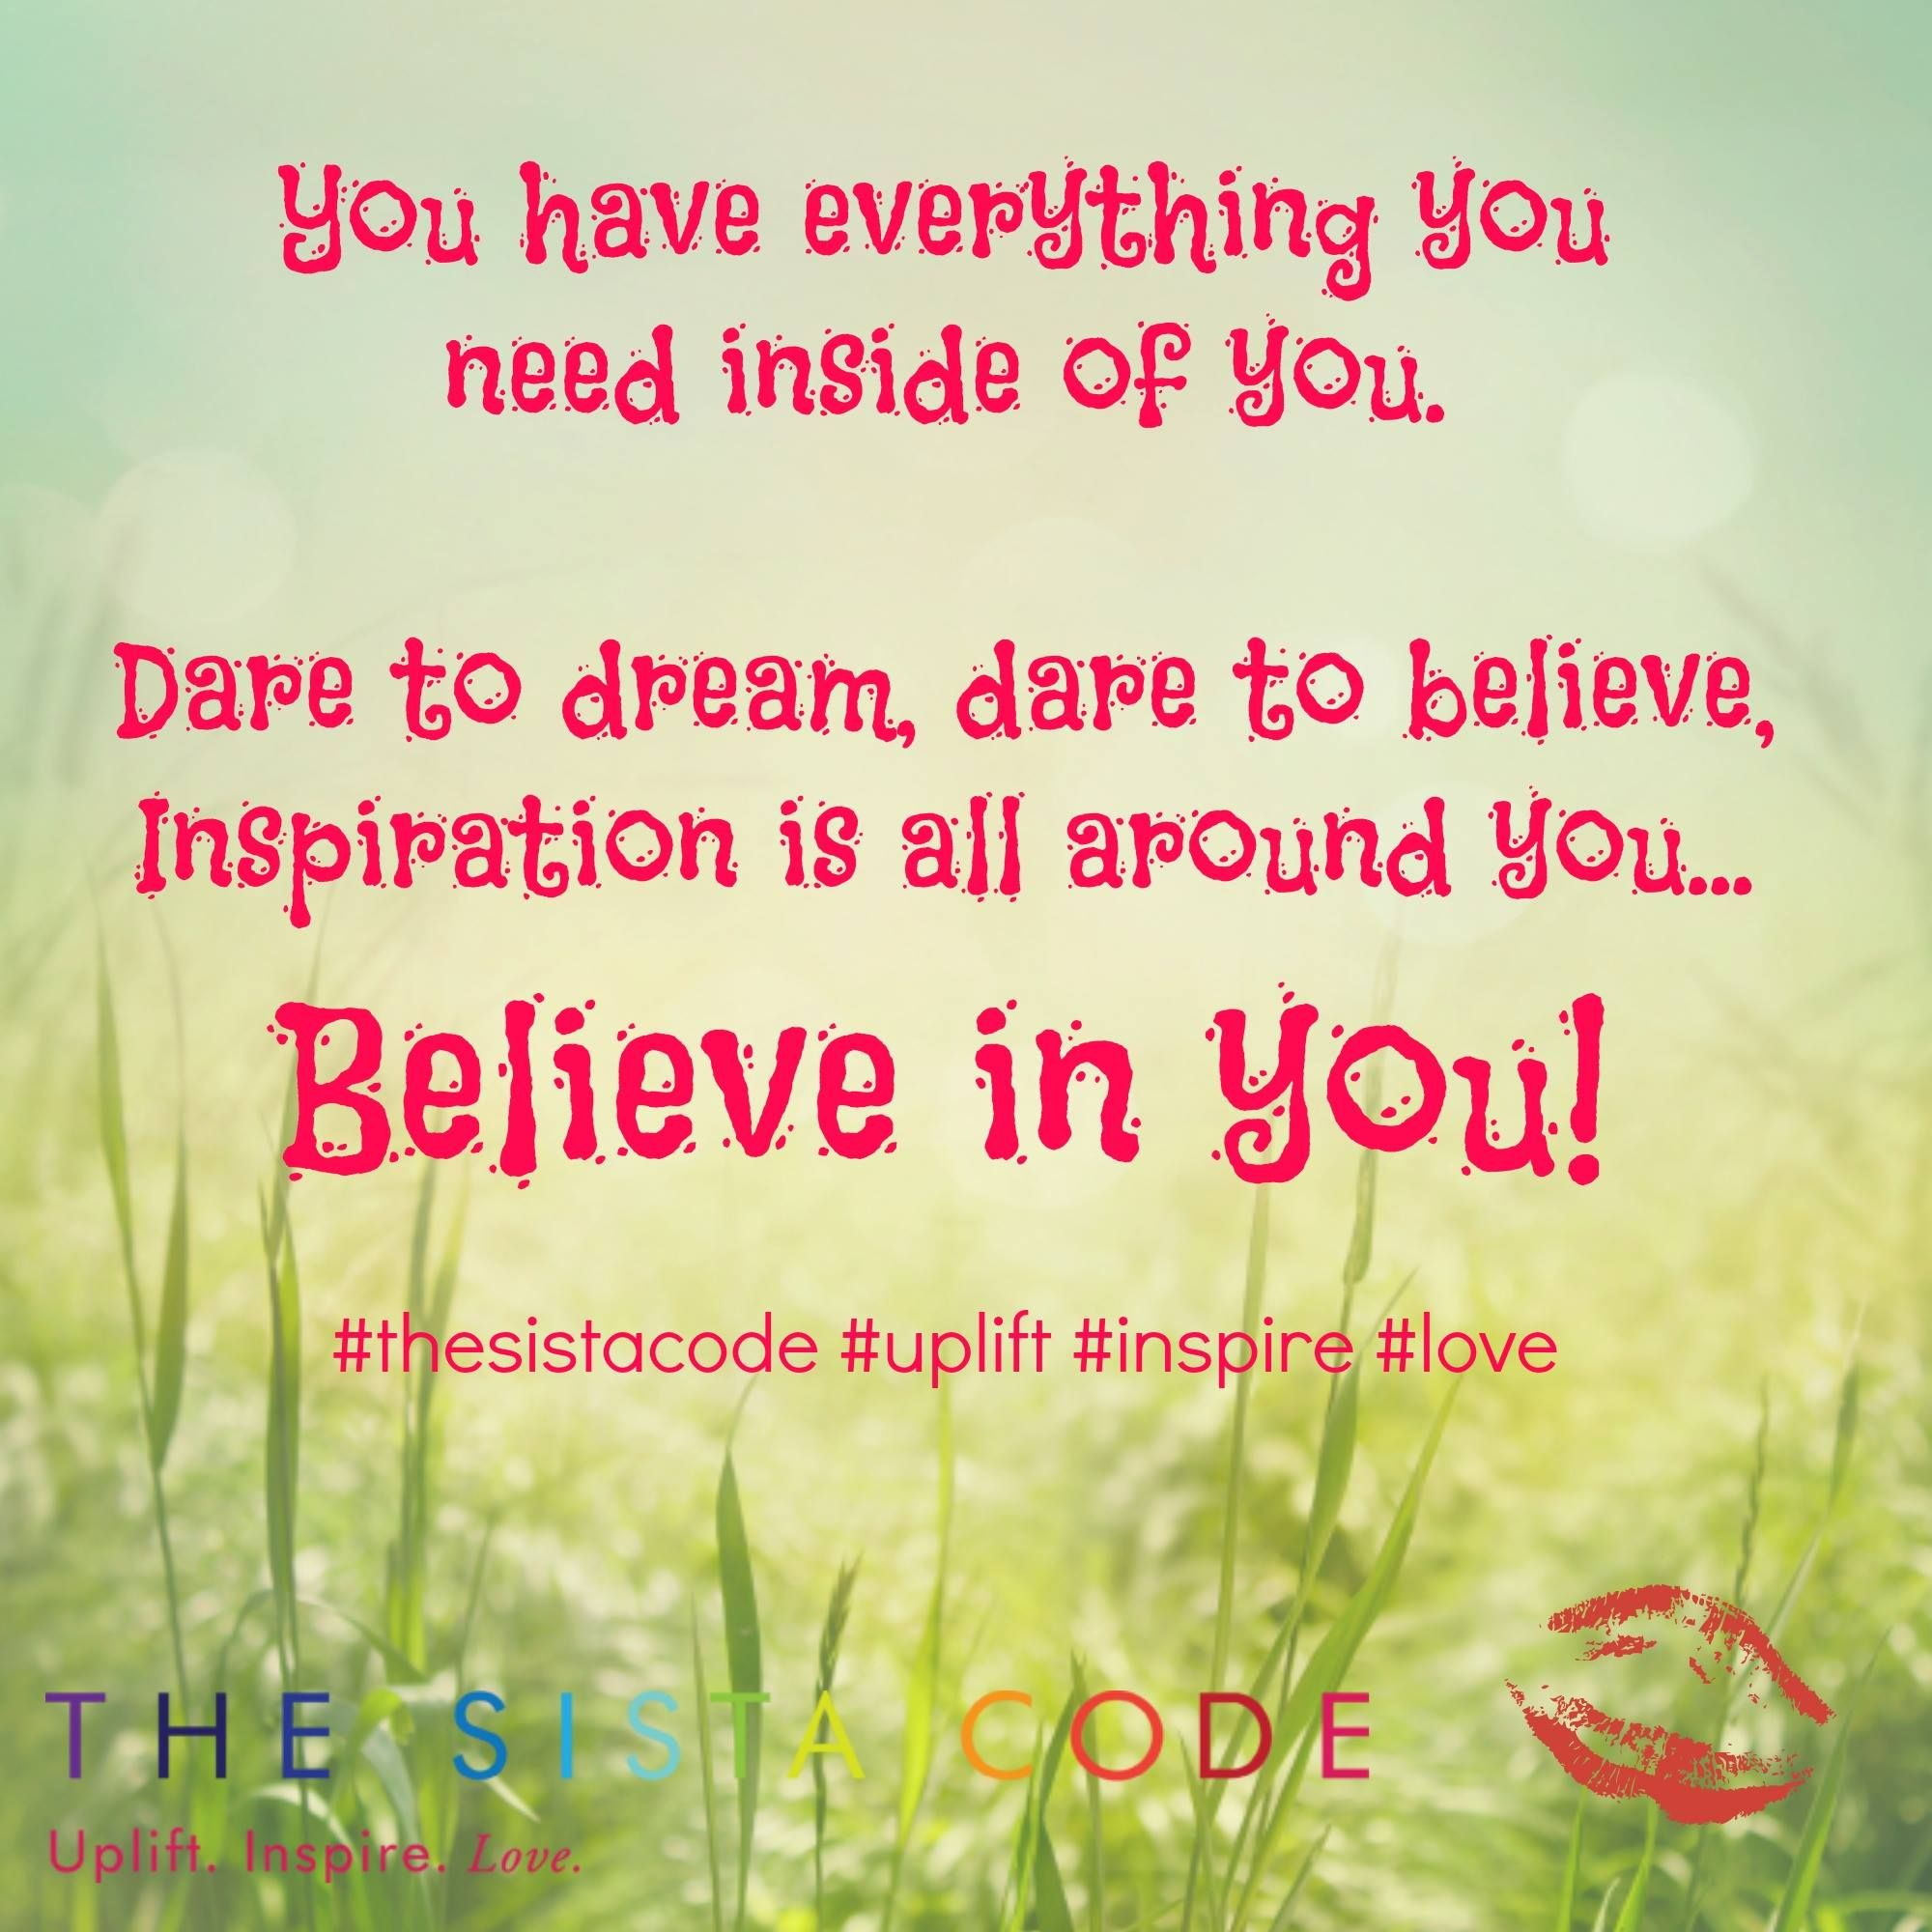 Have an awesome day sistas! #thesistacode #uplift #inspire @thesistacode @melissahiston